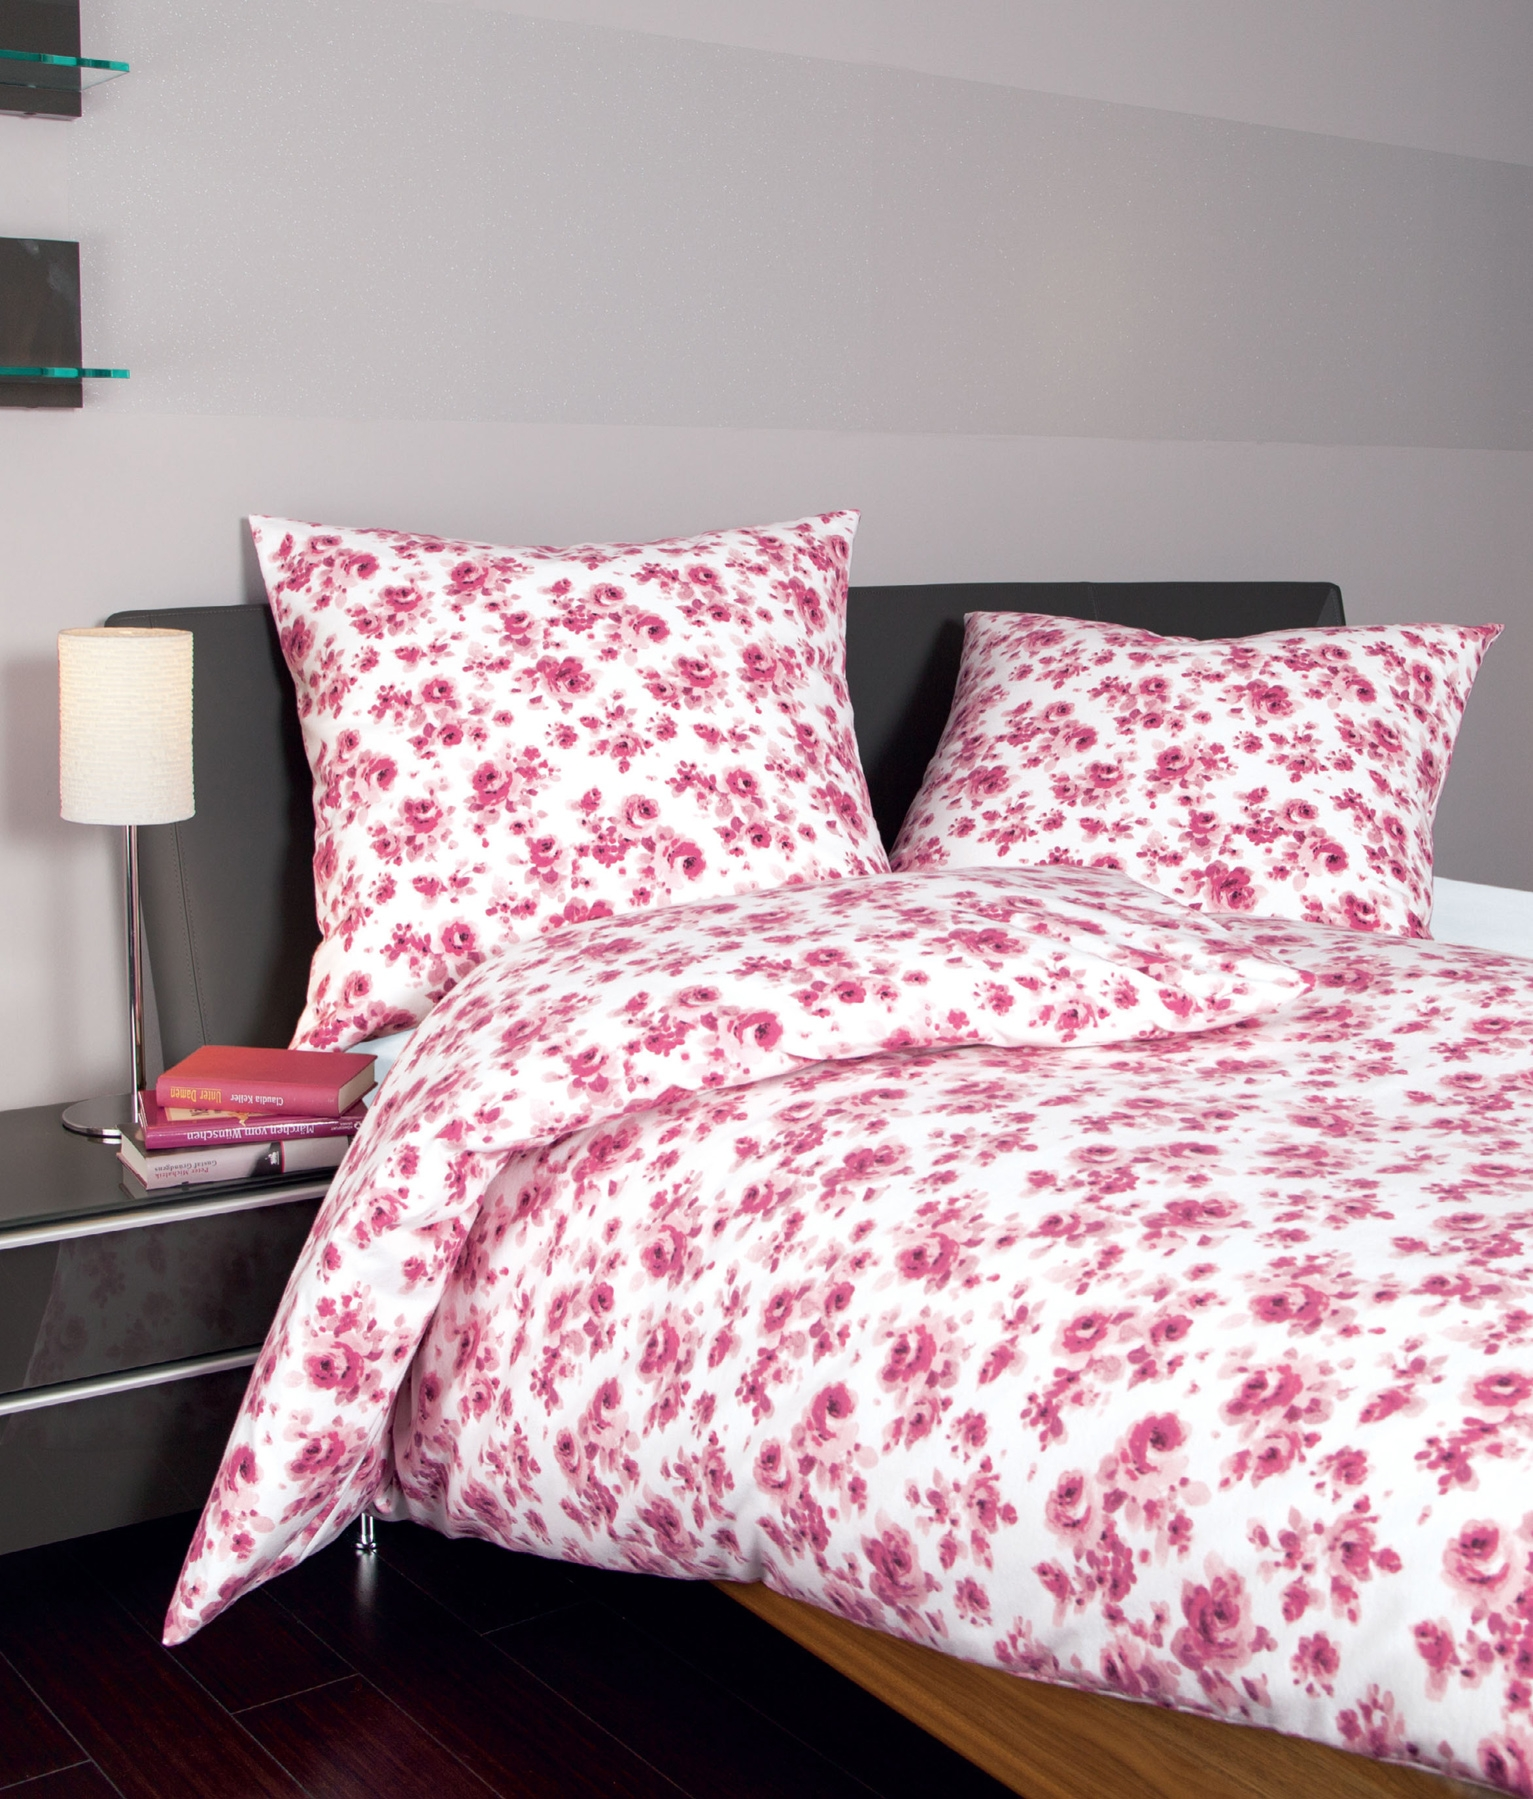 janine fein biber bettw sche 6500 155 x 220 80x80 cm in fuchsia ebay. Black Bedroom Furniture Sets. Home Design Ideas